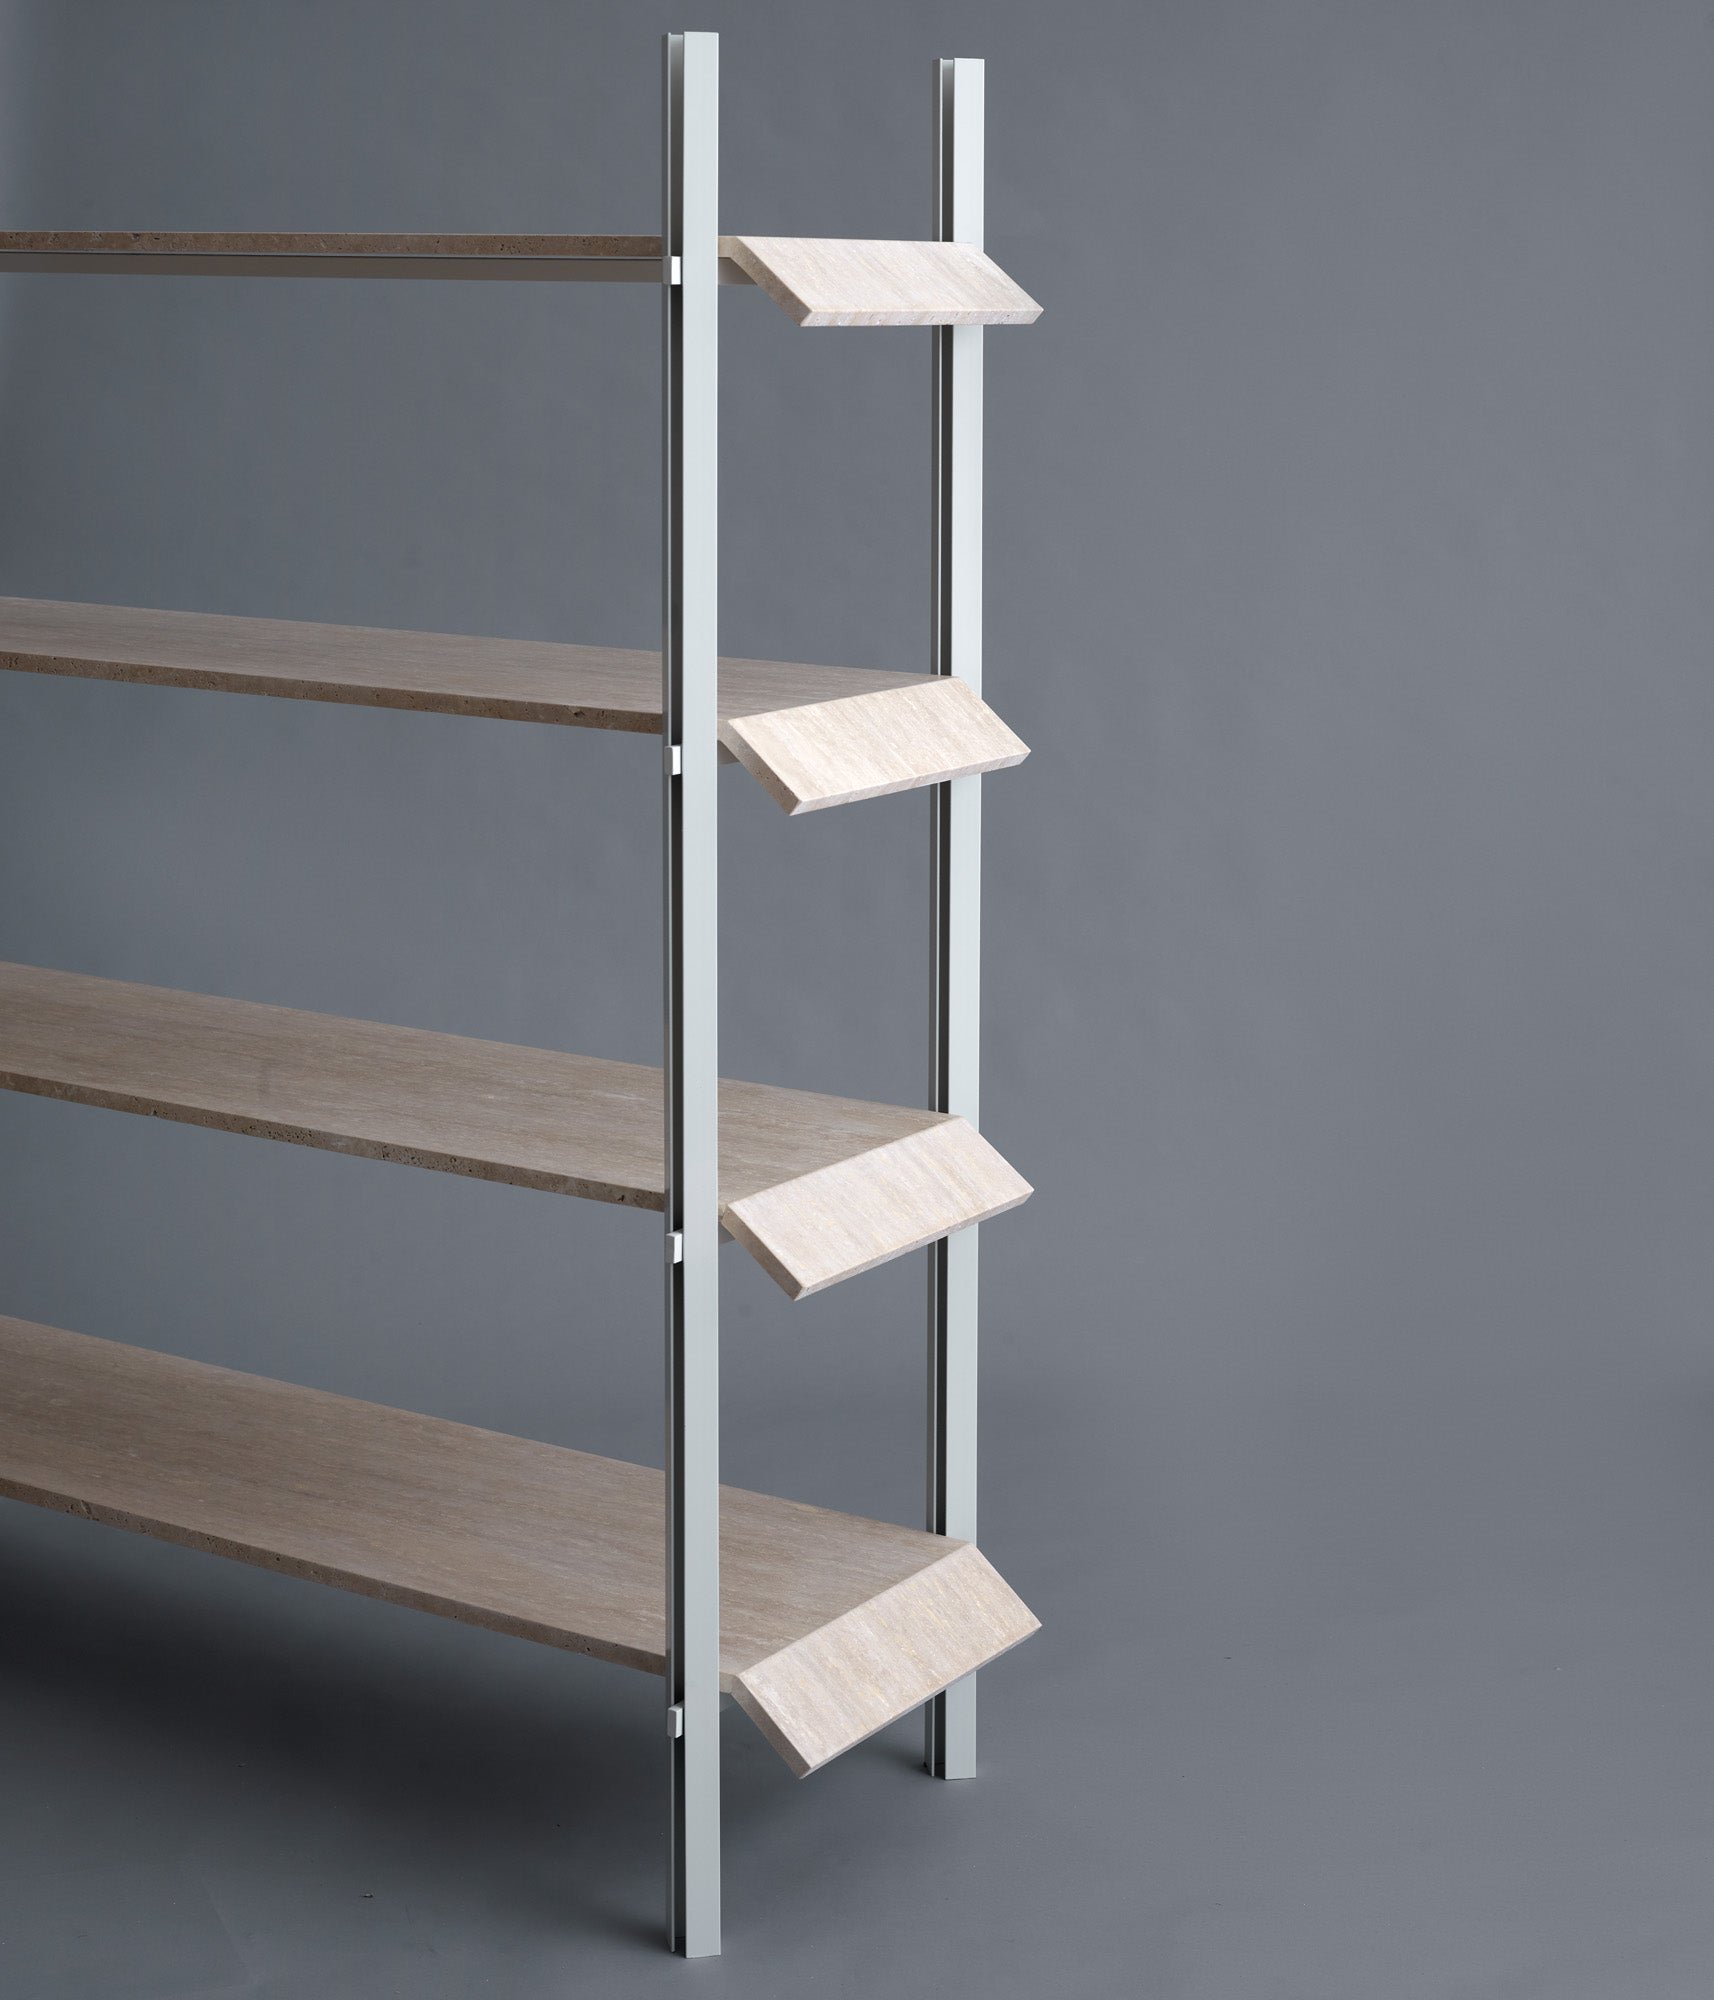 Double edged high shelf